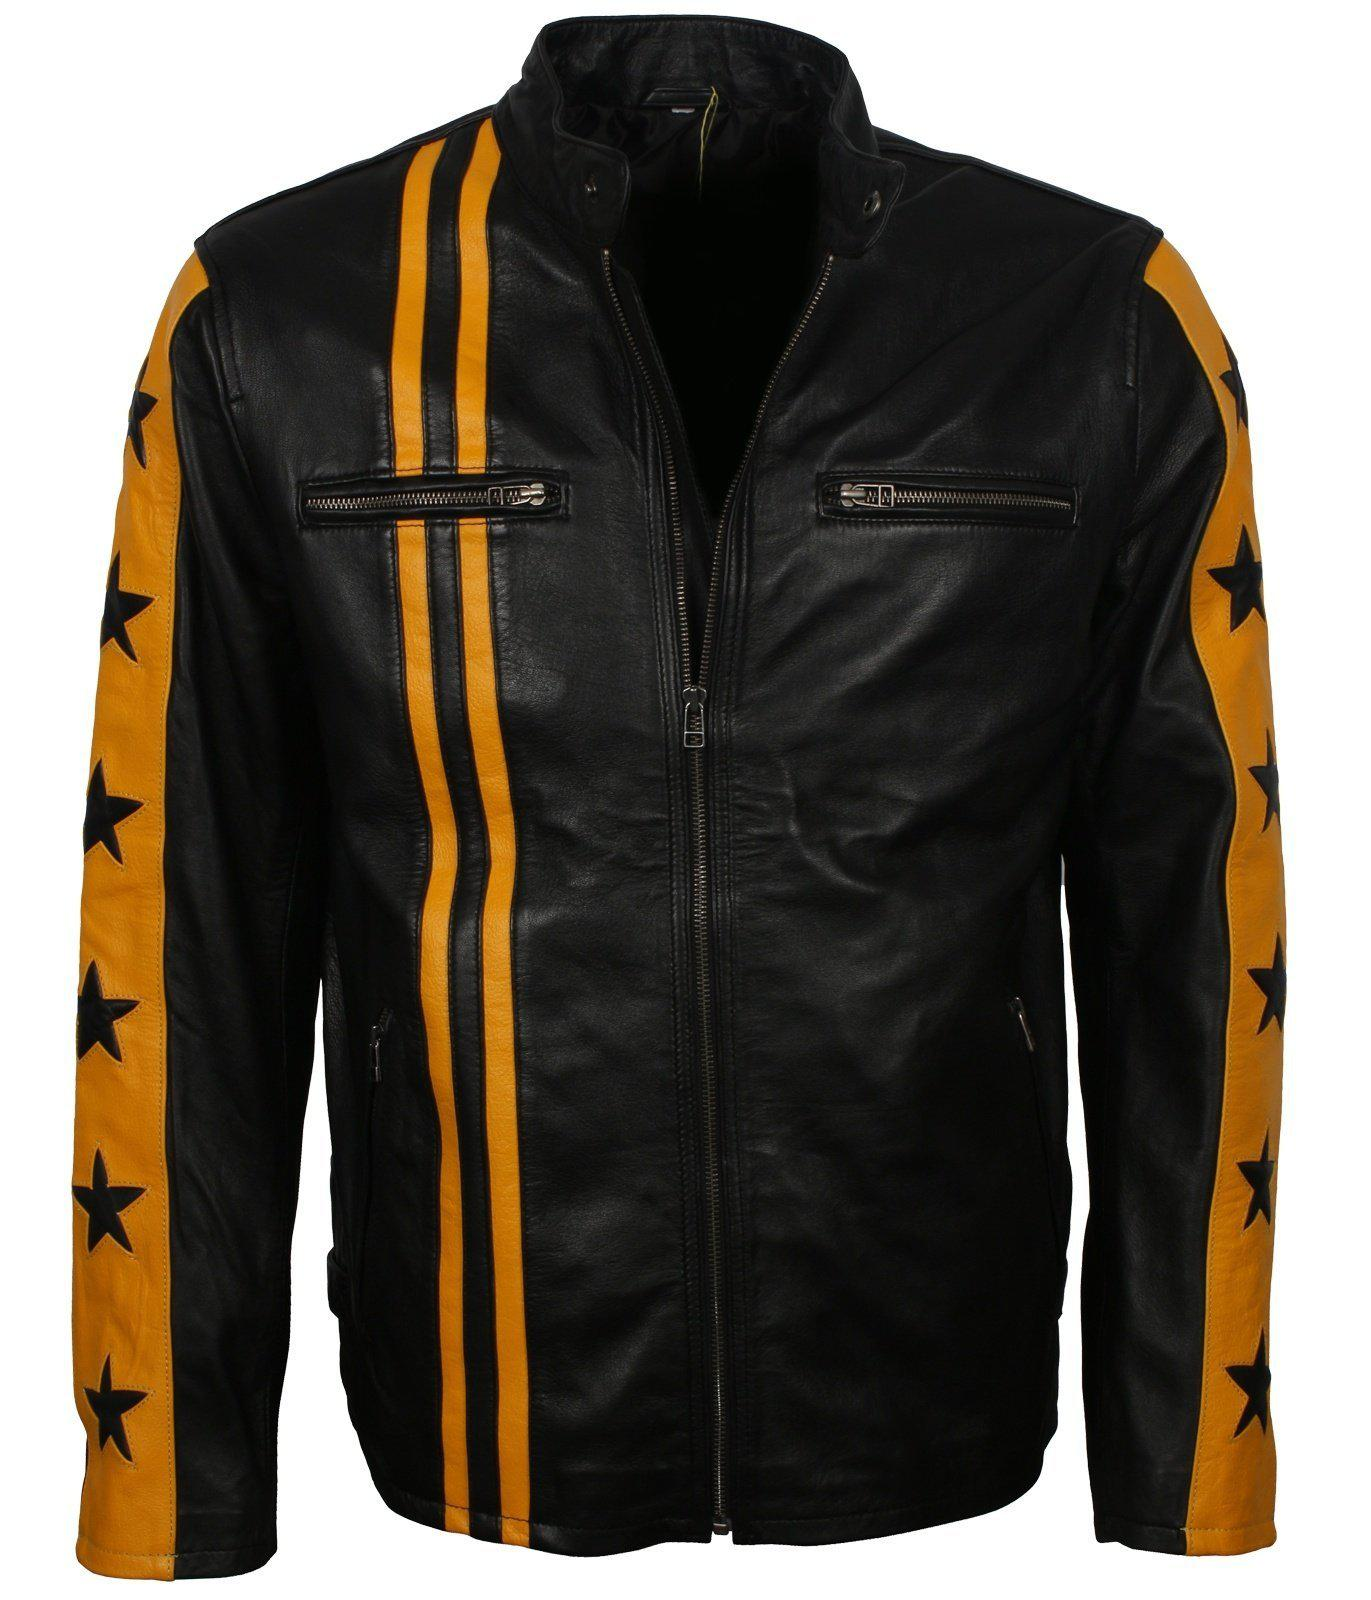 Star and Stripes Leather Motorcycle Jacket